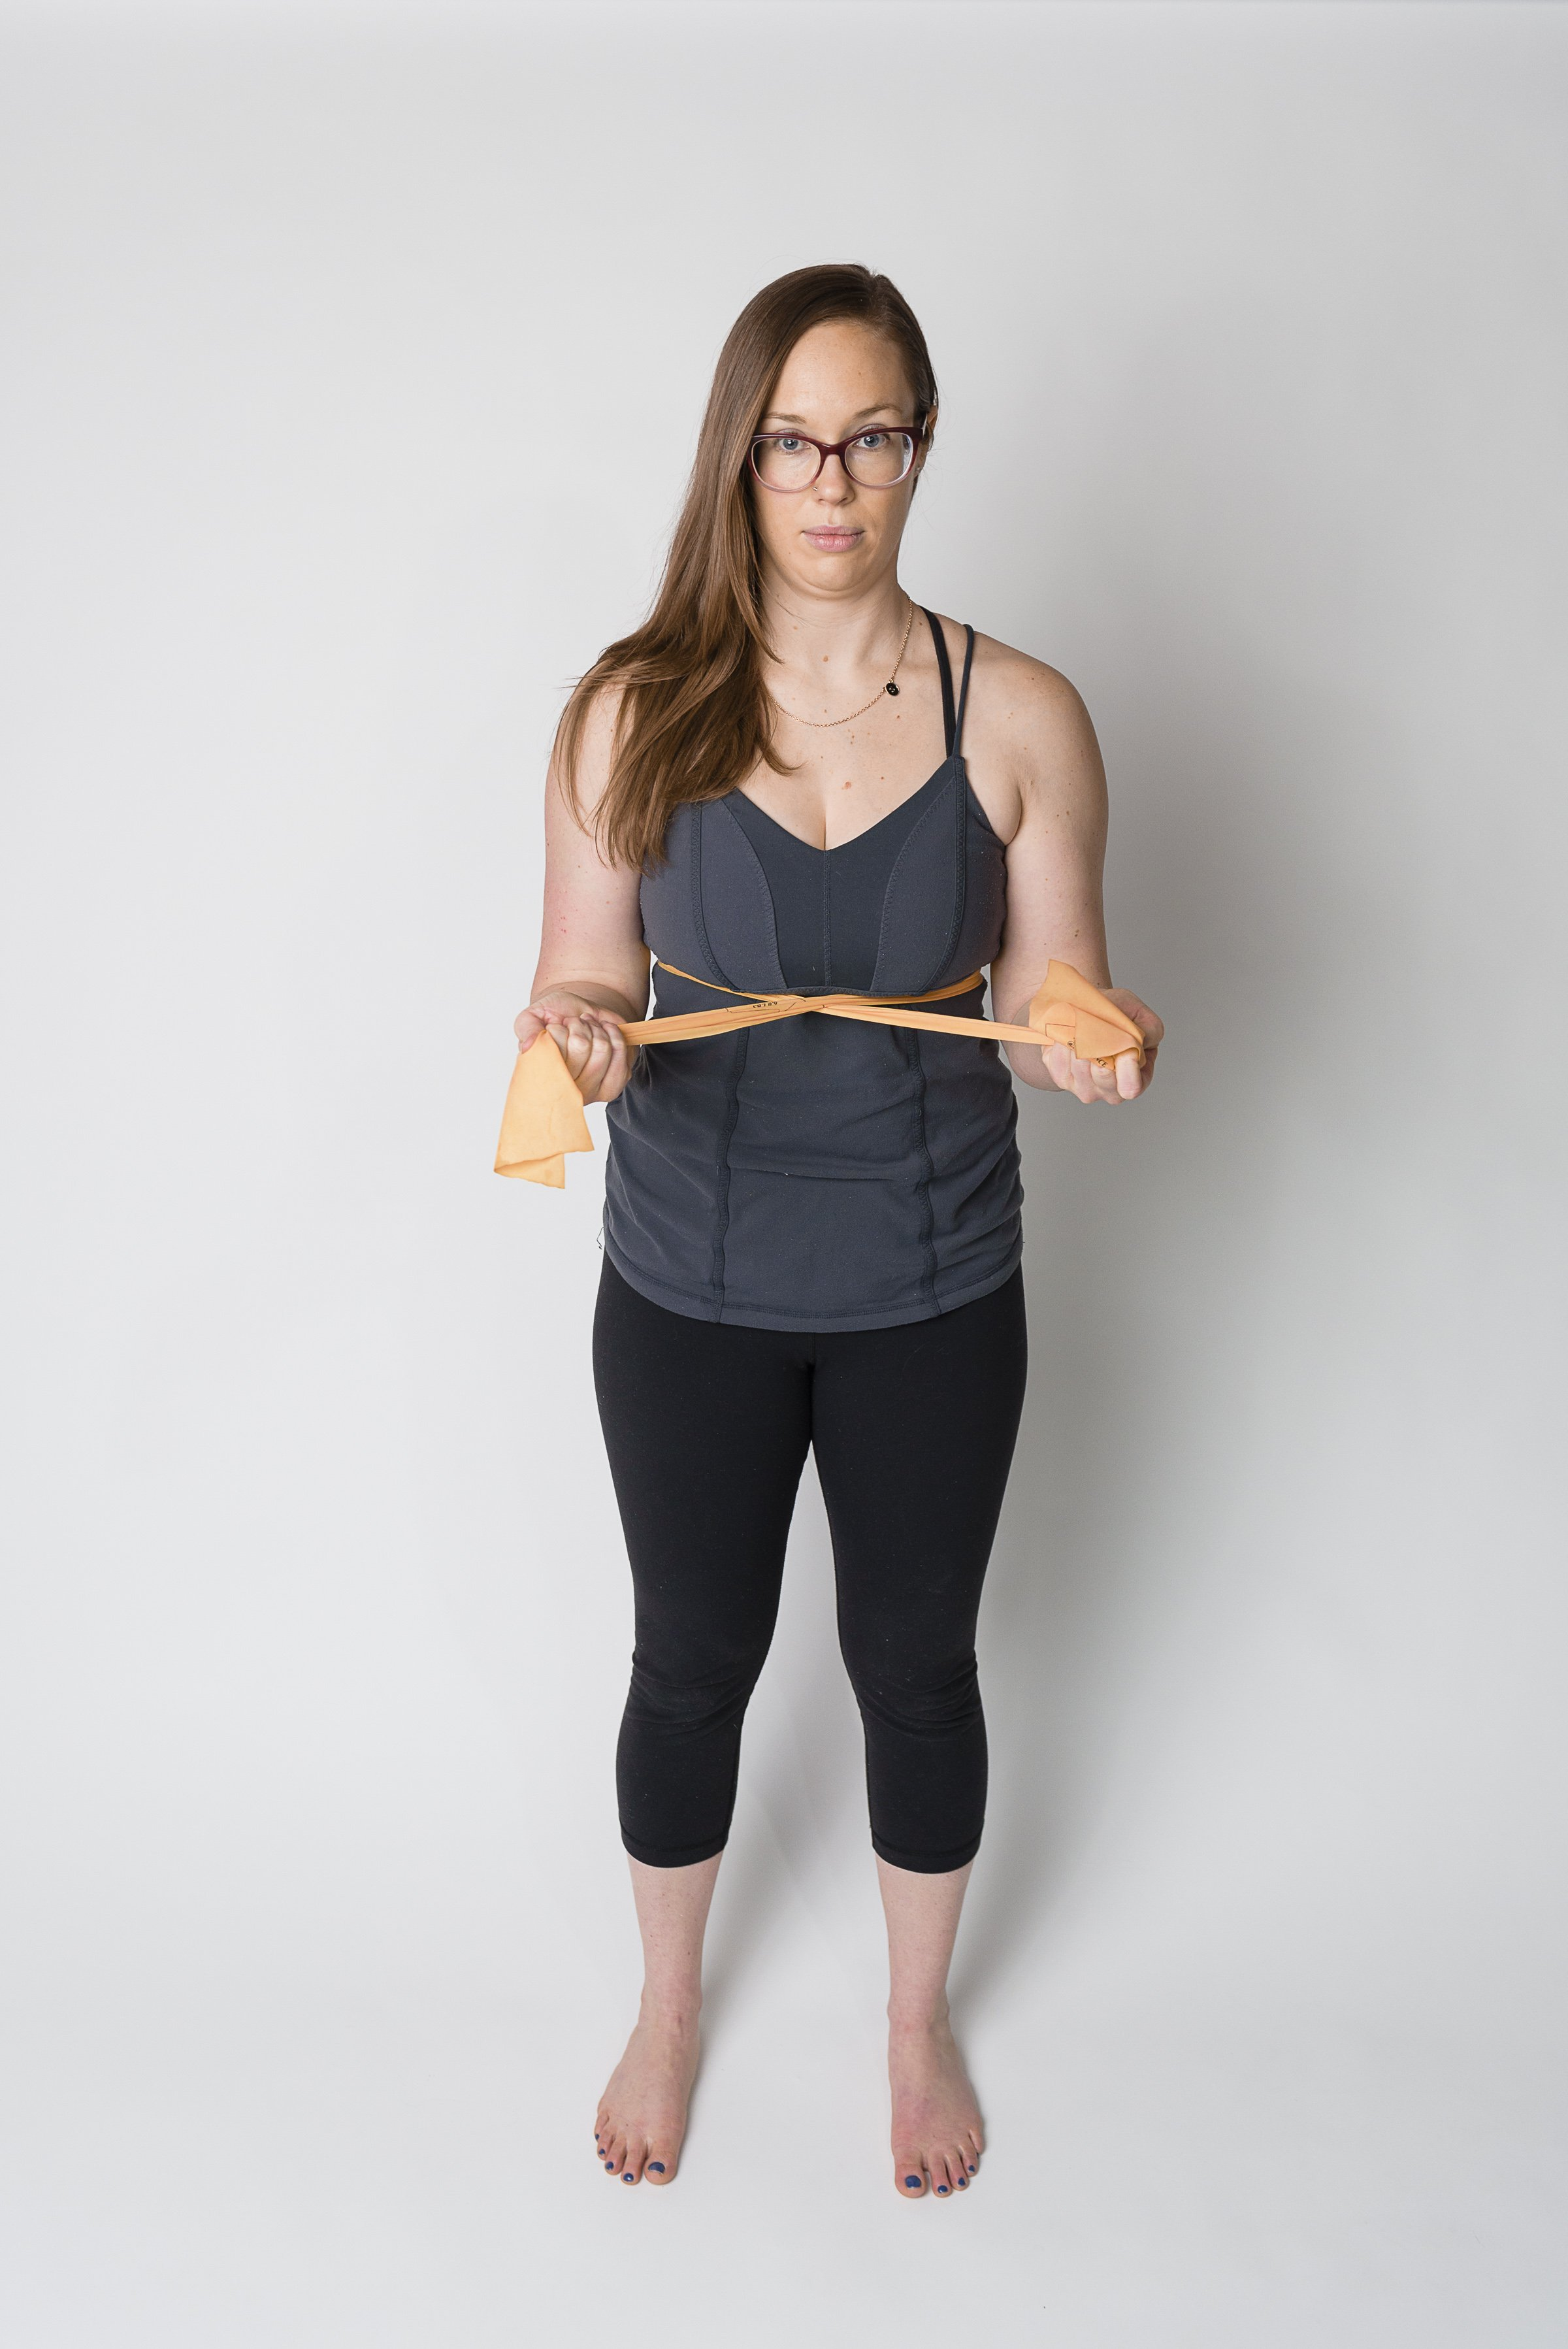 5 Reasons Your Diastasis Recti Is NOT Healing - Jessie Mundell